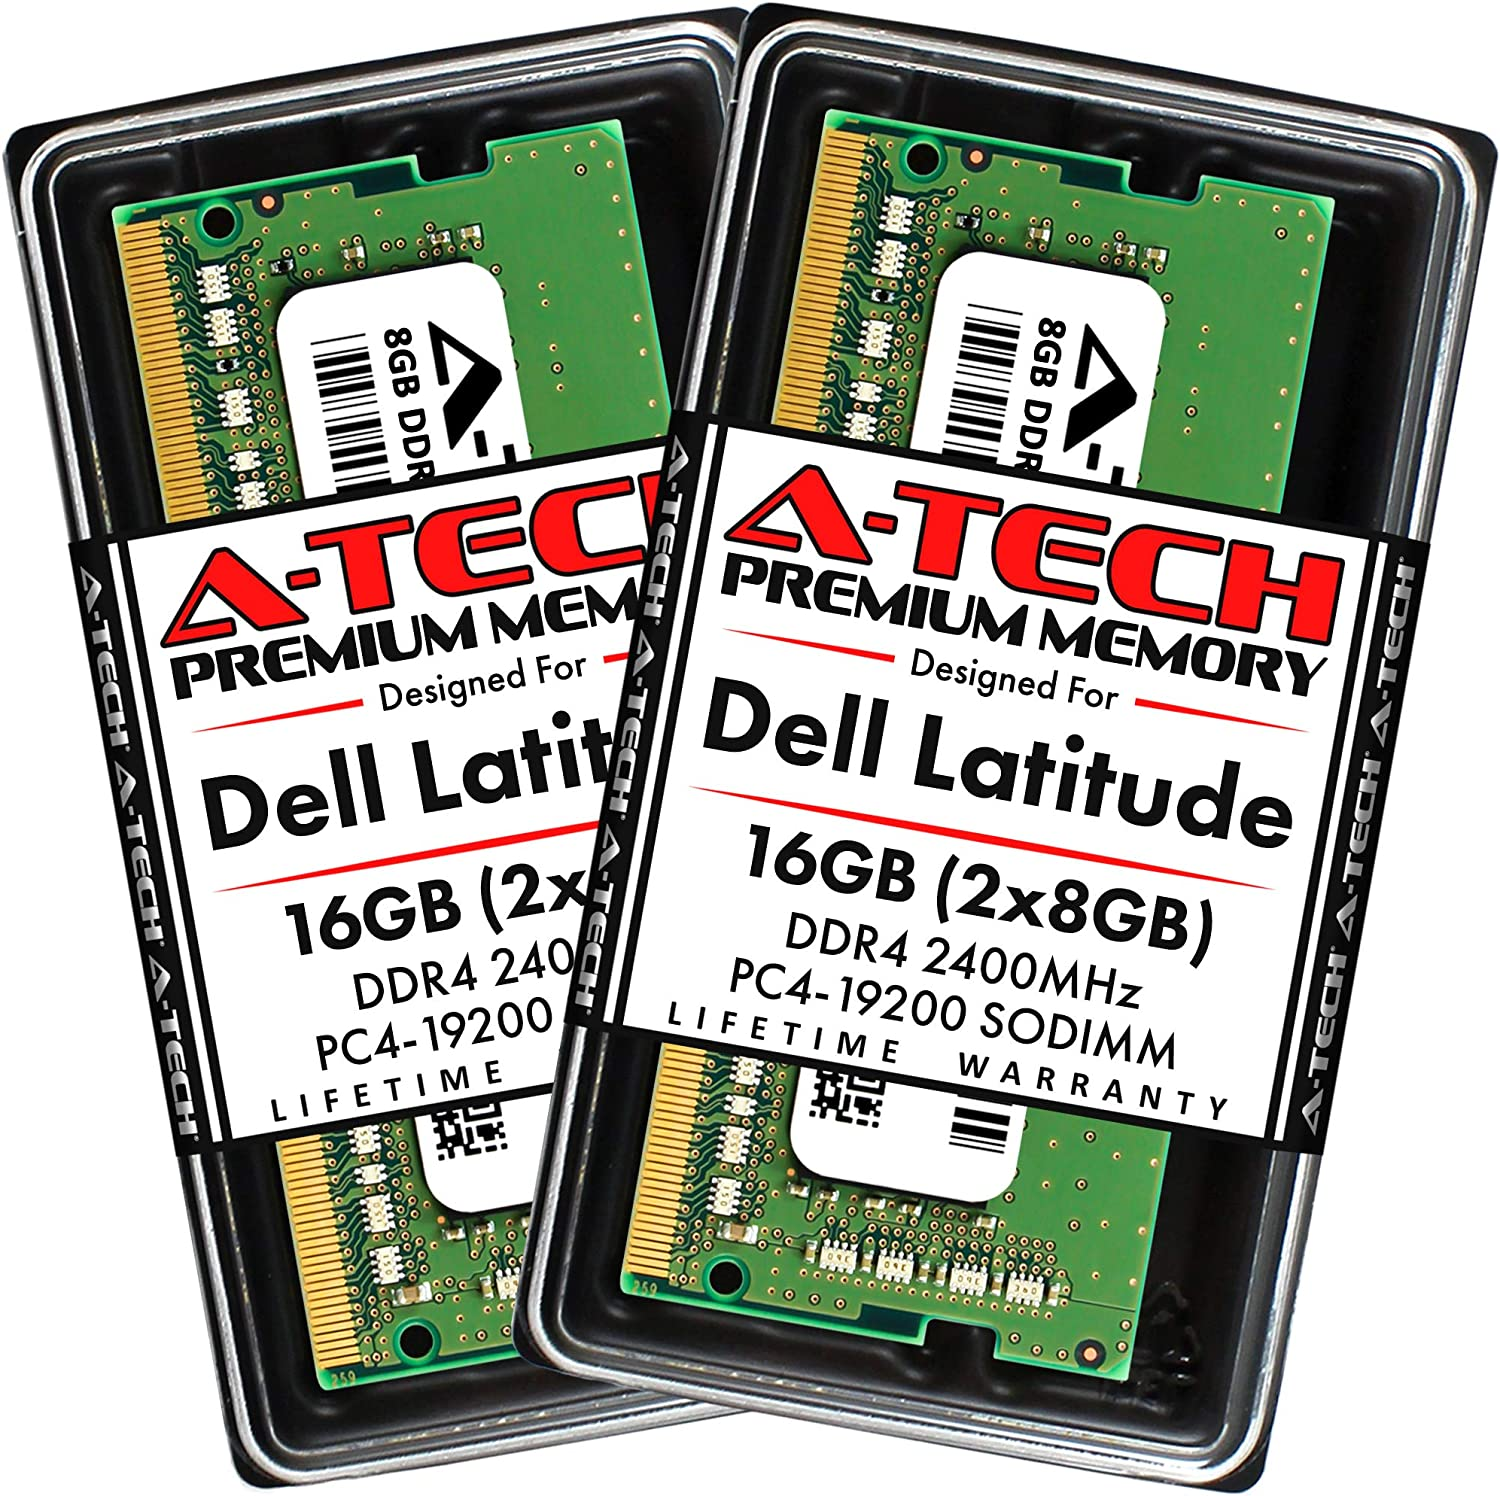 A-Tech 16GB (2x8GB) RAM for Dell Latitude 5580, 5488, 5480 | DDR4 2400MHz SODIMM PC4-19200 Laptop Memory Upgrade Kit